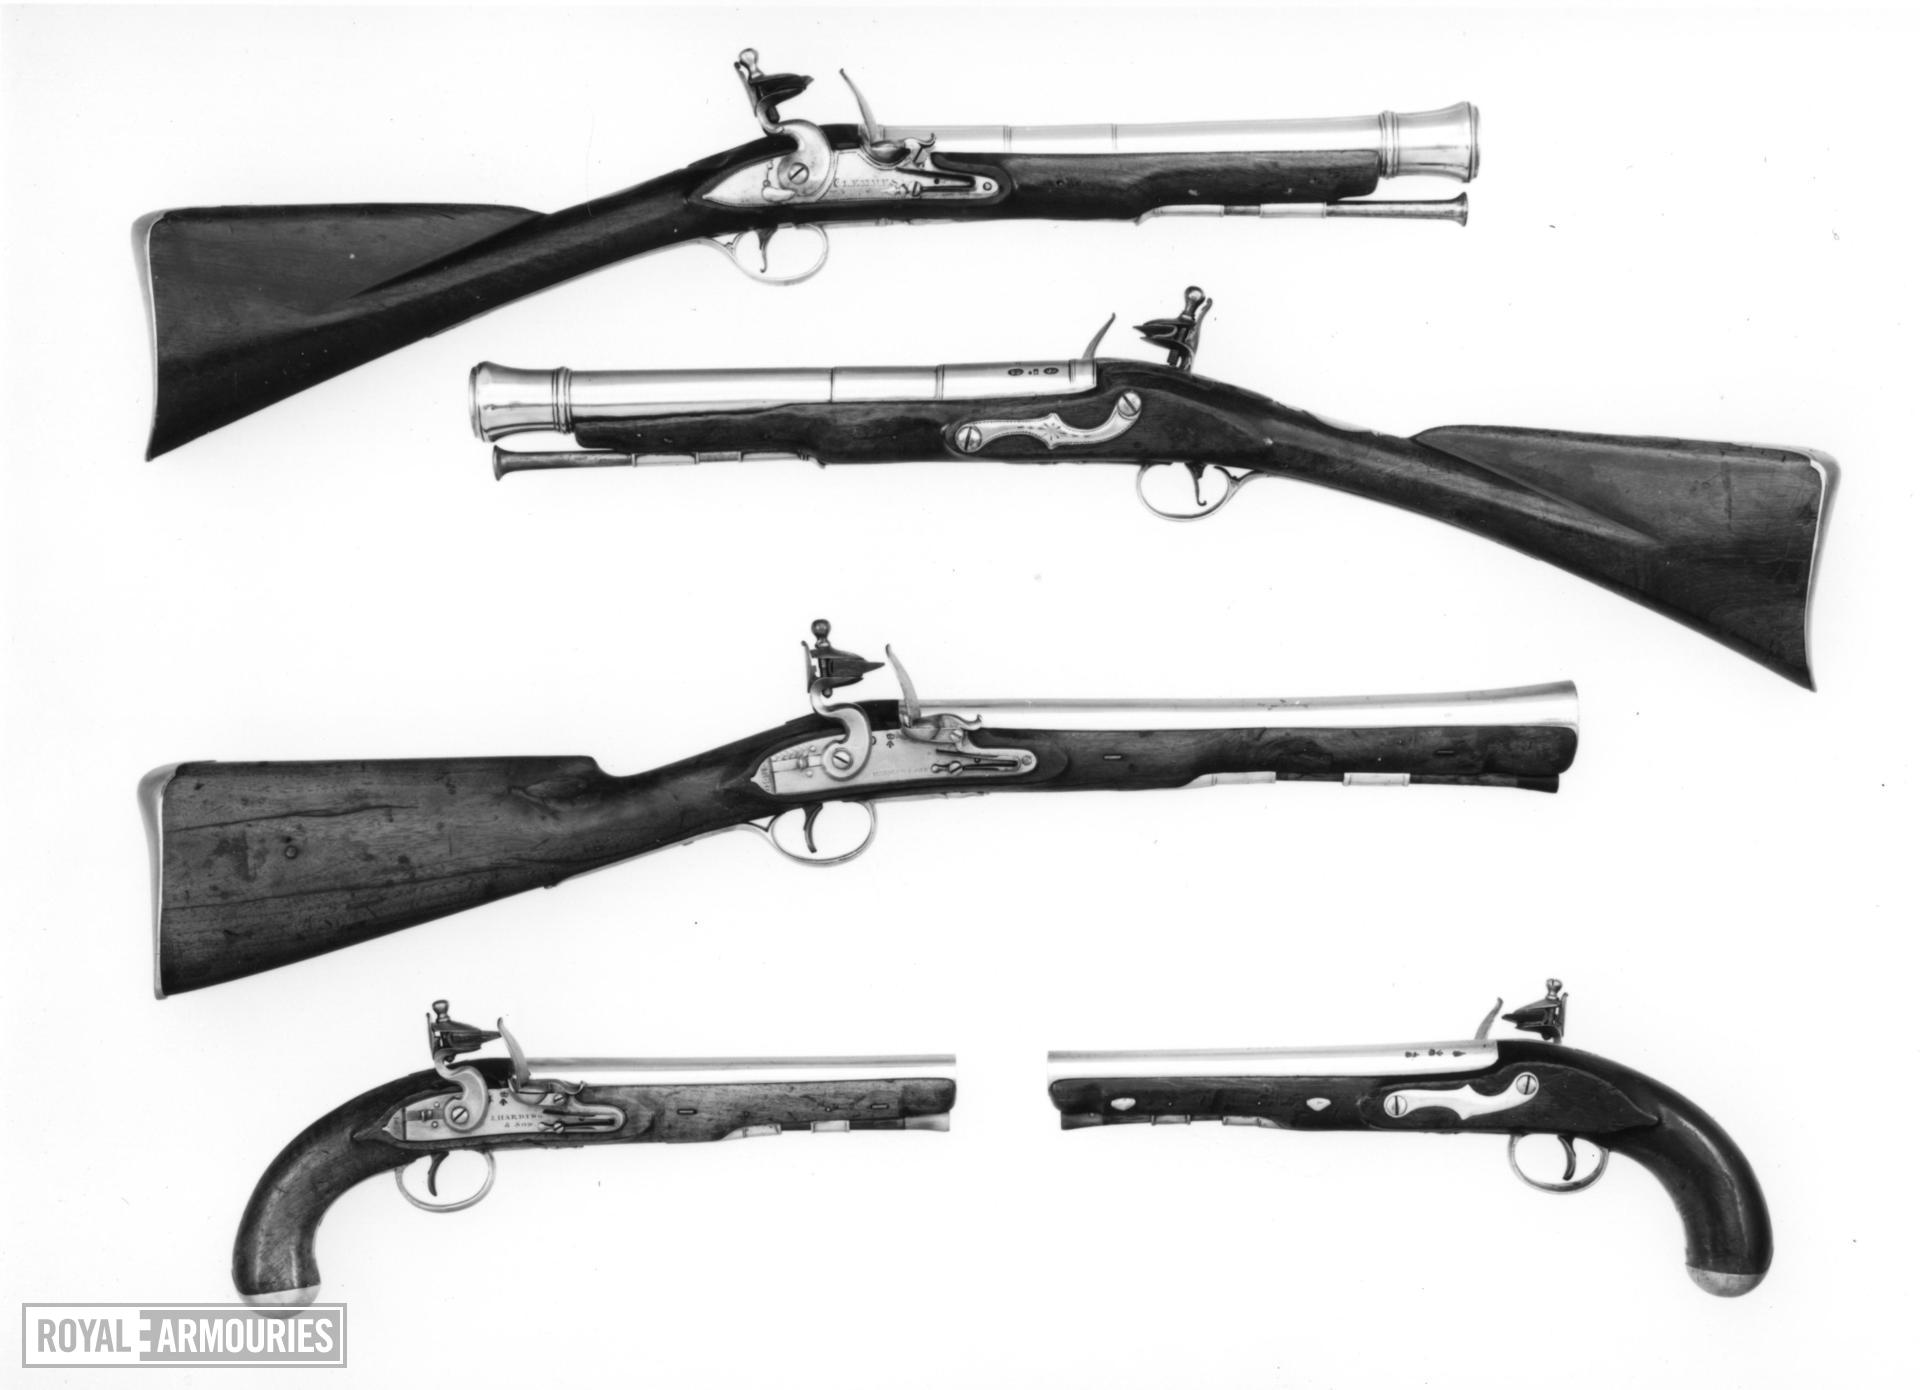 Flintlock muzzle-loading blunderbuss - By J. Harding and Son For Her Majesty's Mail Coaches